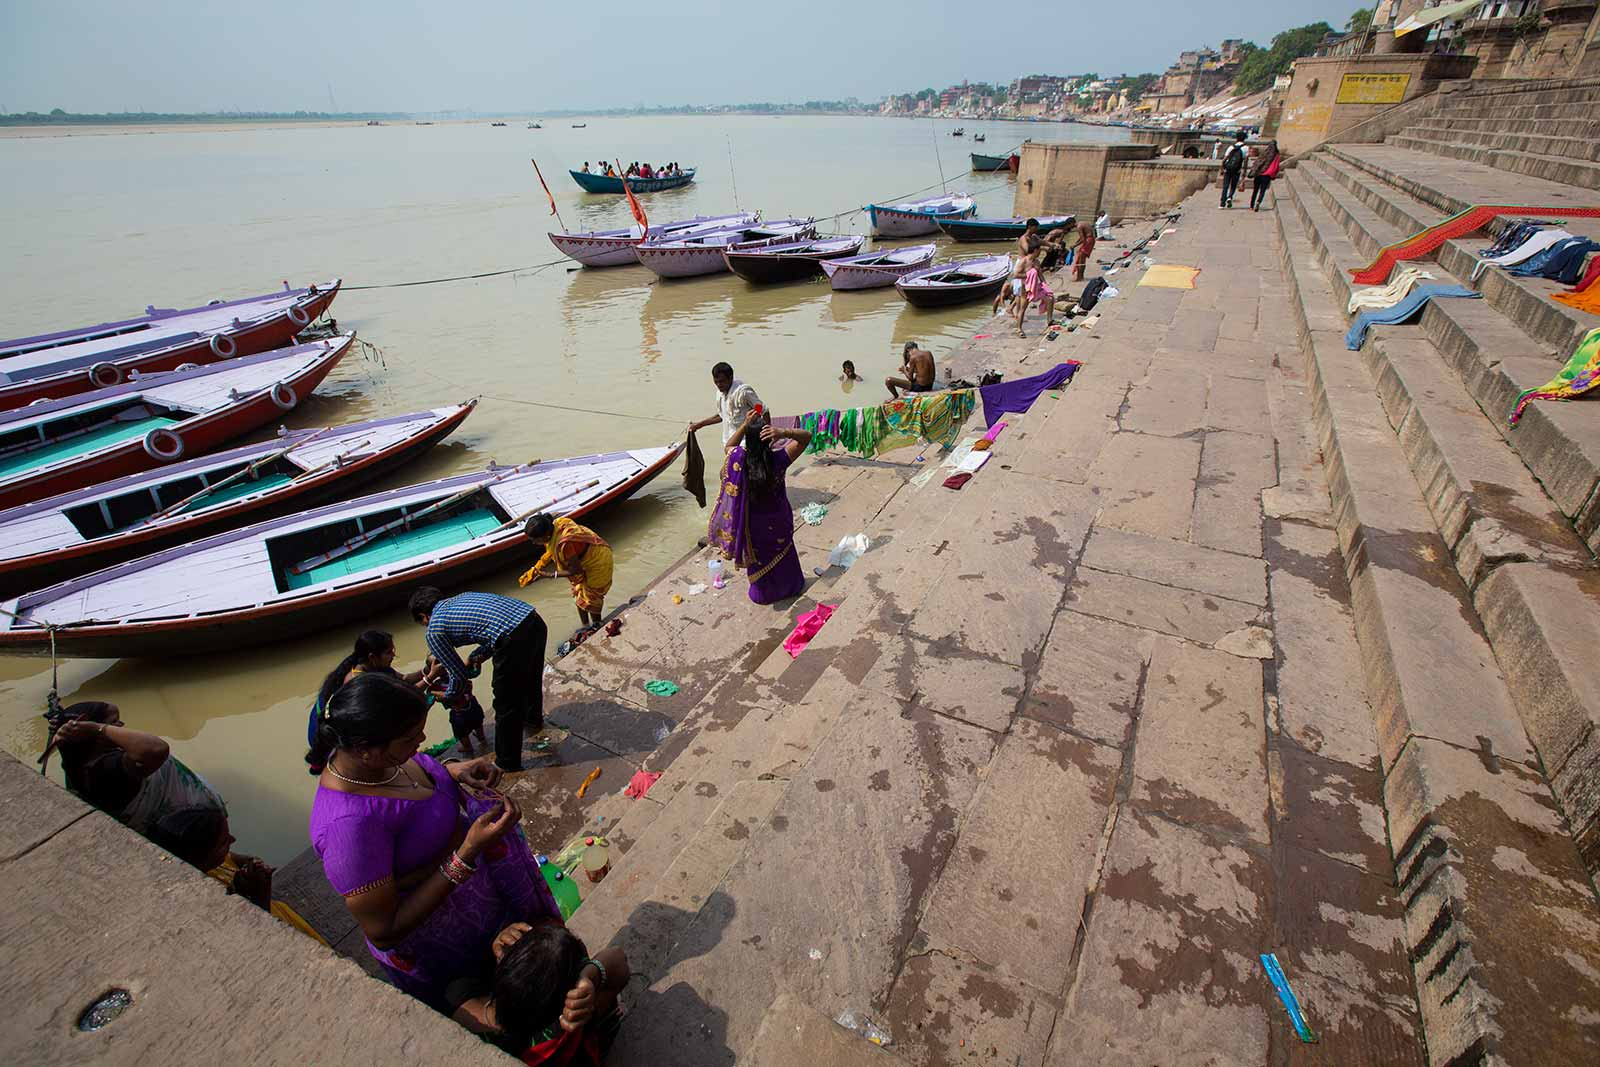 Drying and washing of clothes happens all along the Ghats in Varanasi.